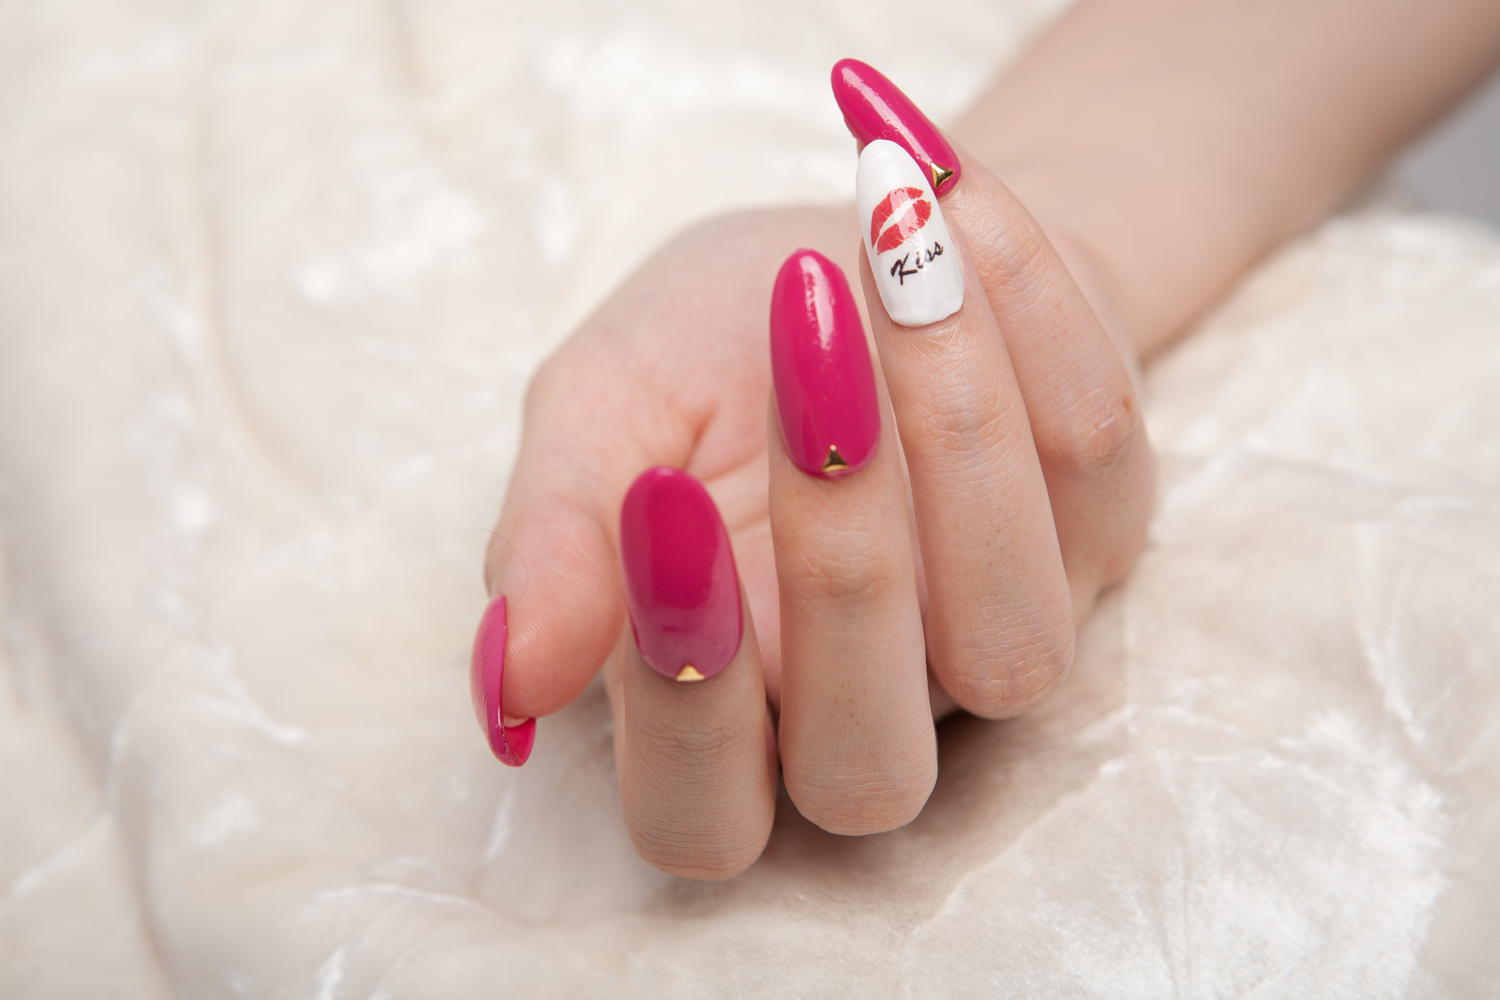 NailSnap_MG_2799